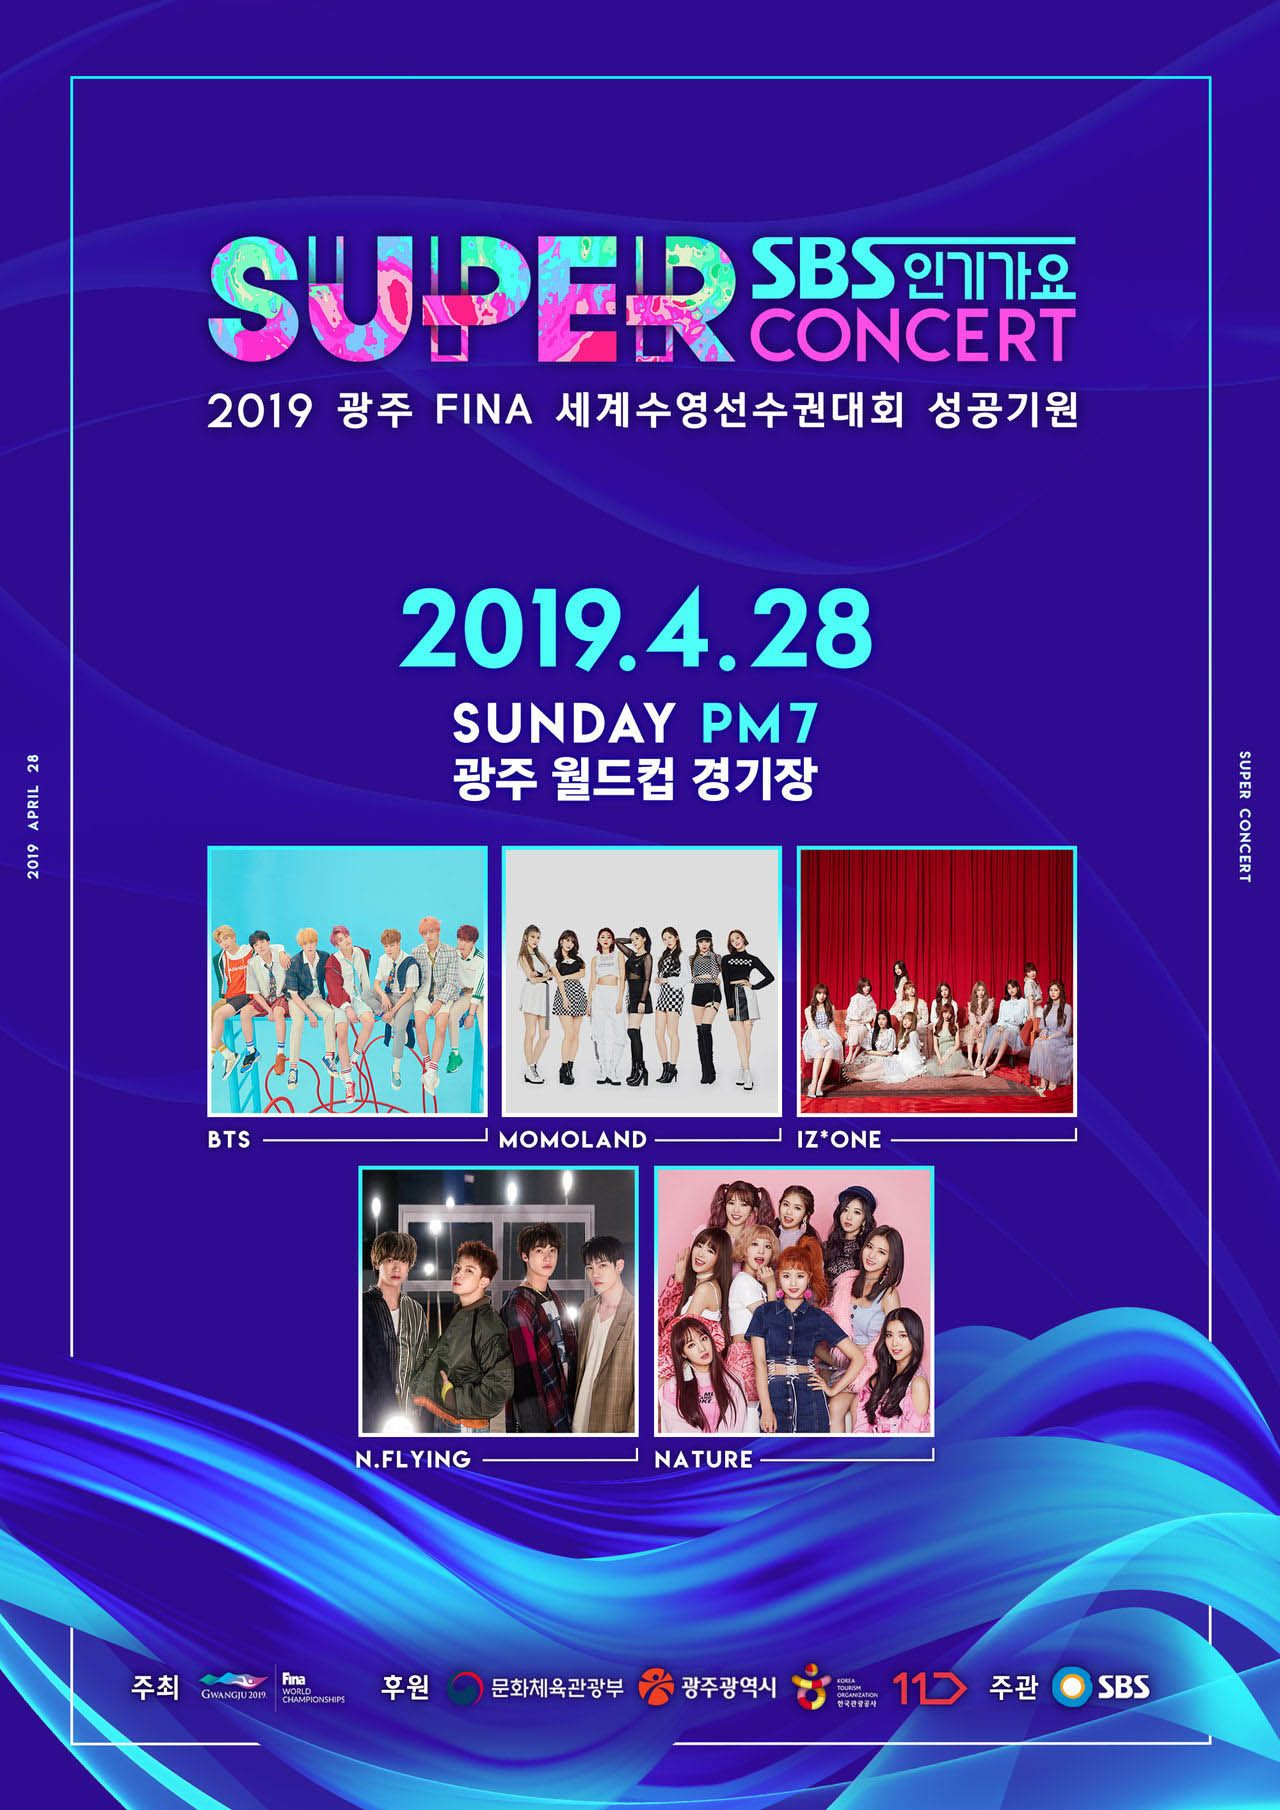 Sbs Inkigayo 2019 Super Concert With Shuttle Bus Tour Concert Tickets Kpop Entertainment Concert